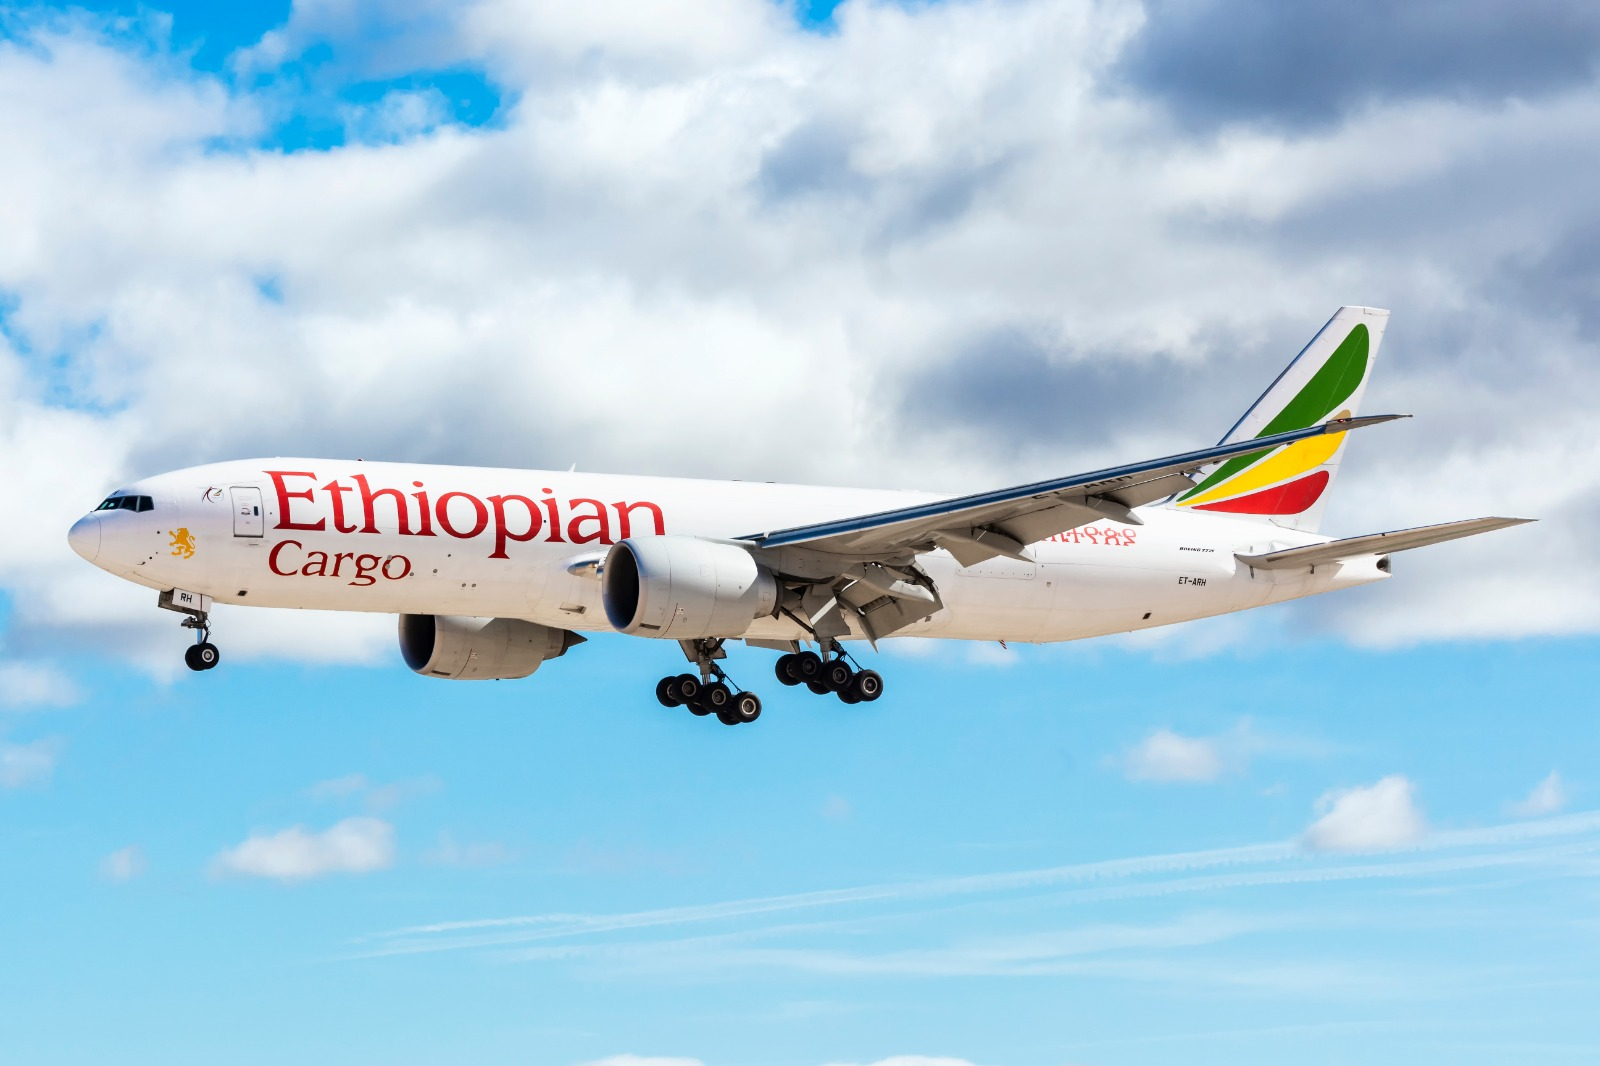 Ethiopian Cargo launches cargo flights Incheon to Atlanta via Anchorage